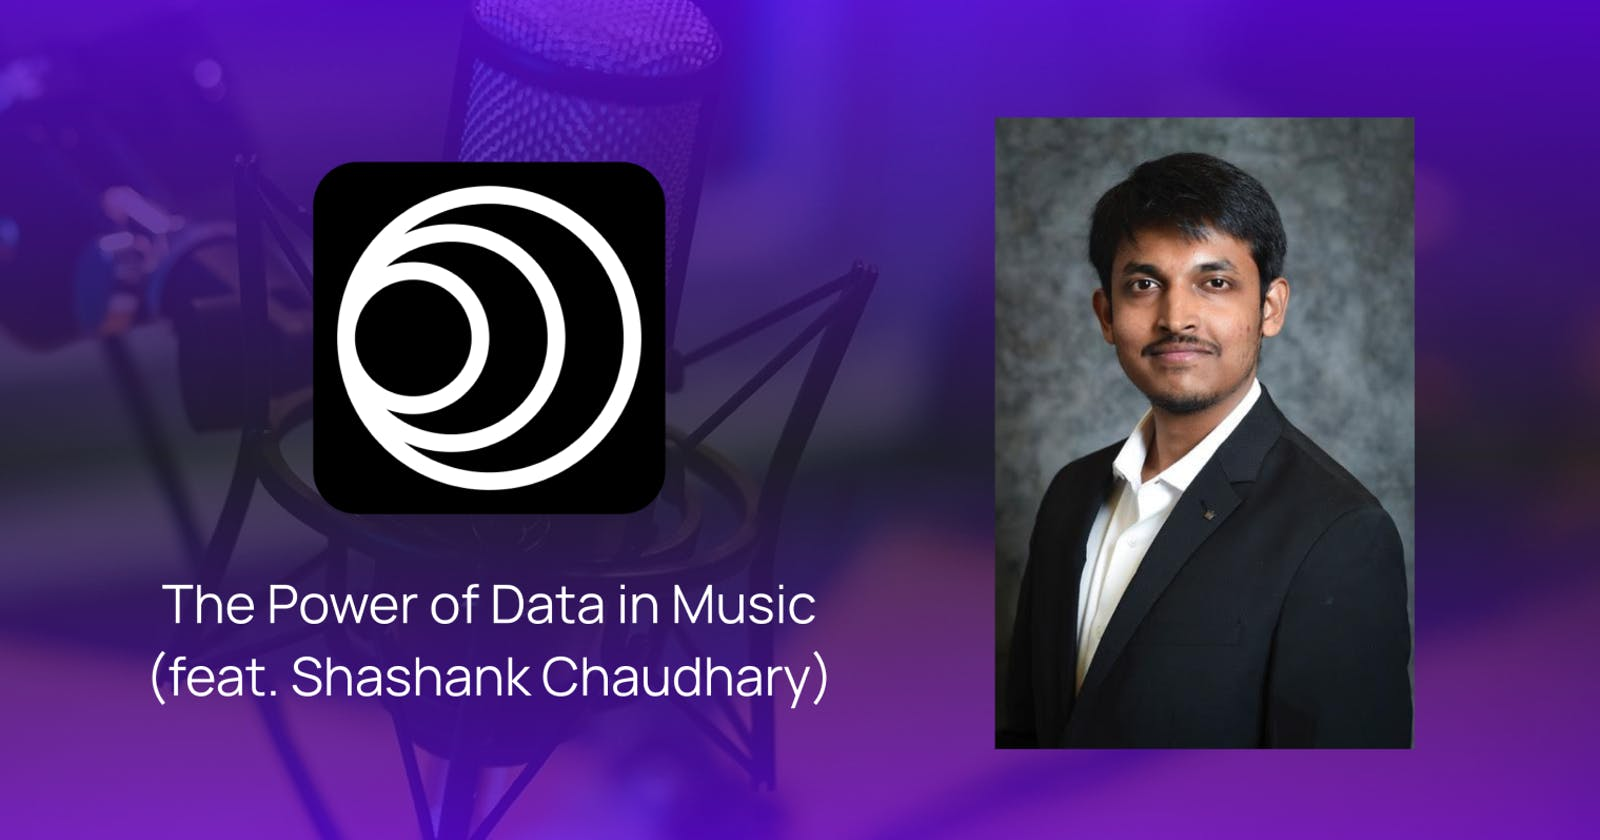 The Power of Data in Music